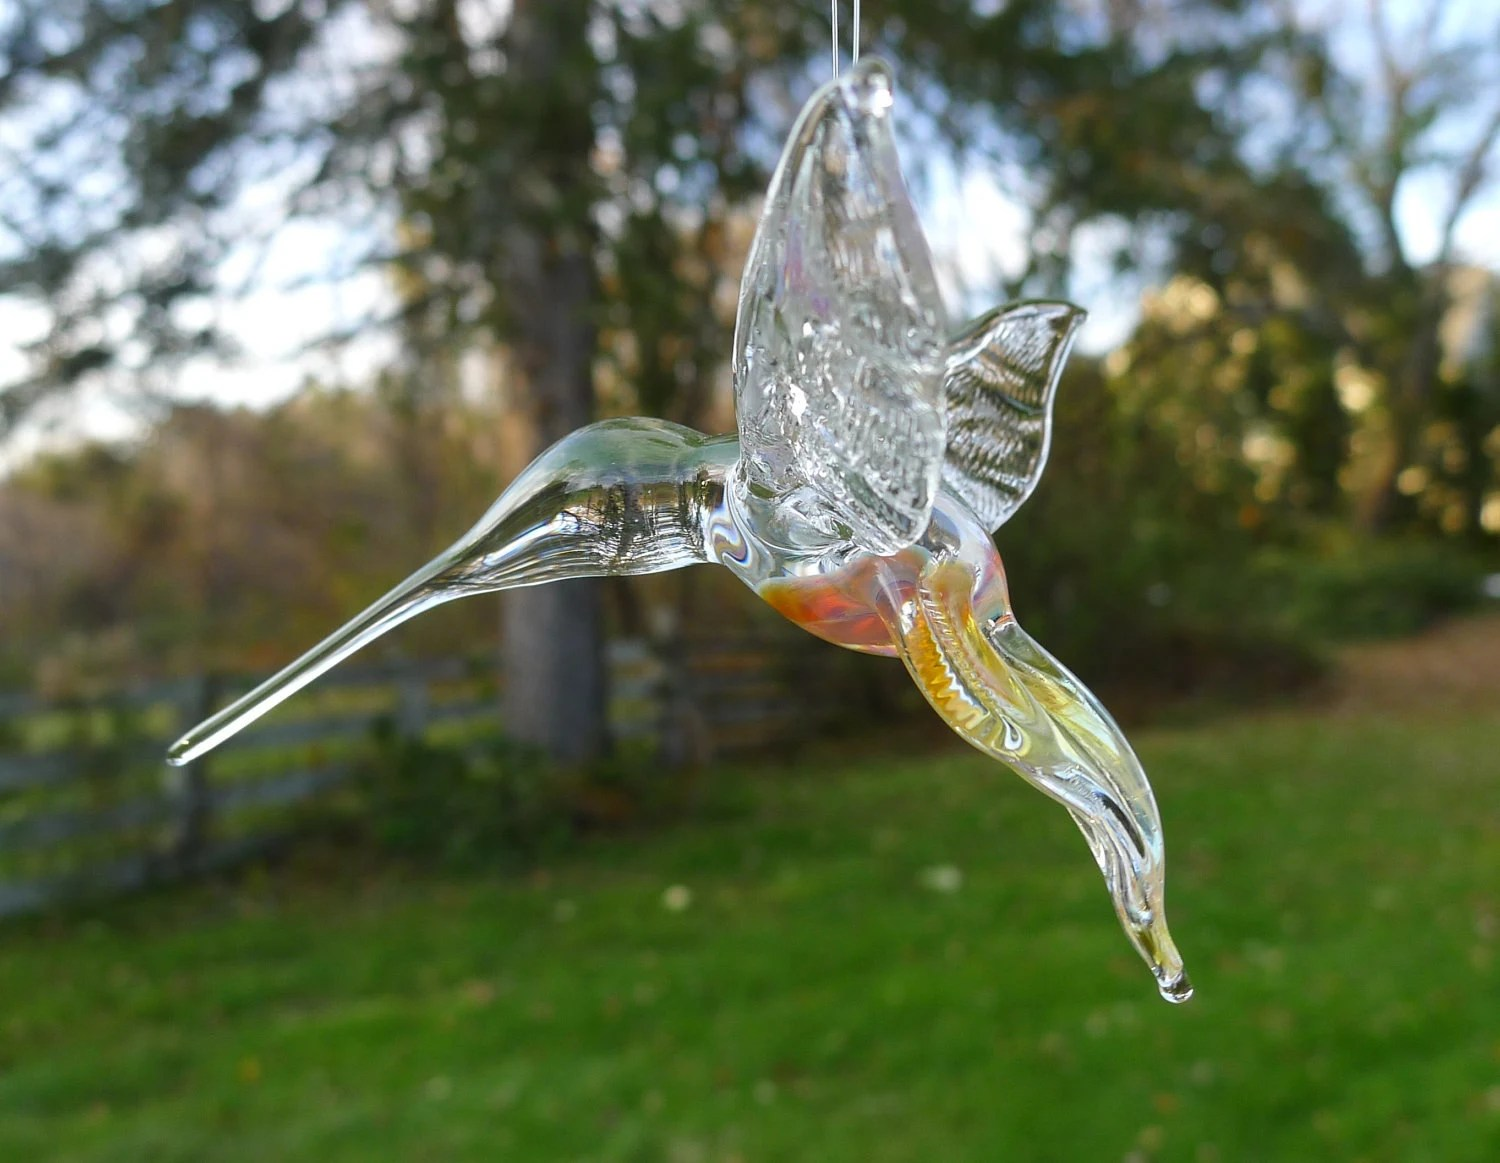 Hand Sculpted Flameworked Hanging Glass Hummingbird by Jenn Goodale